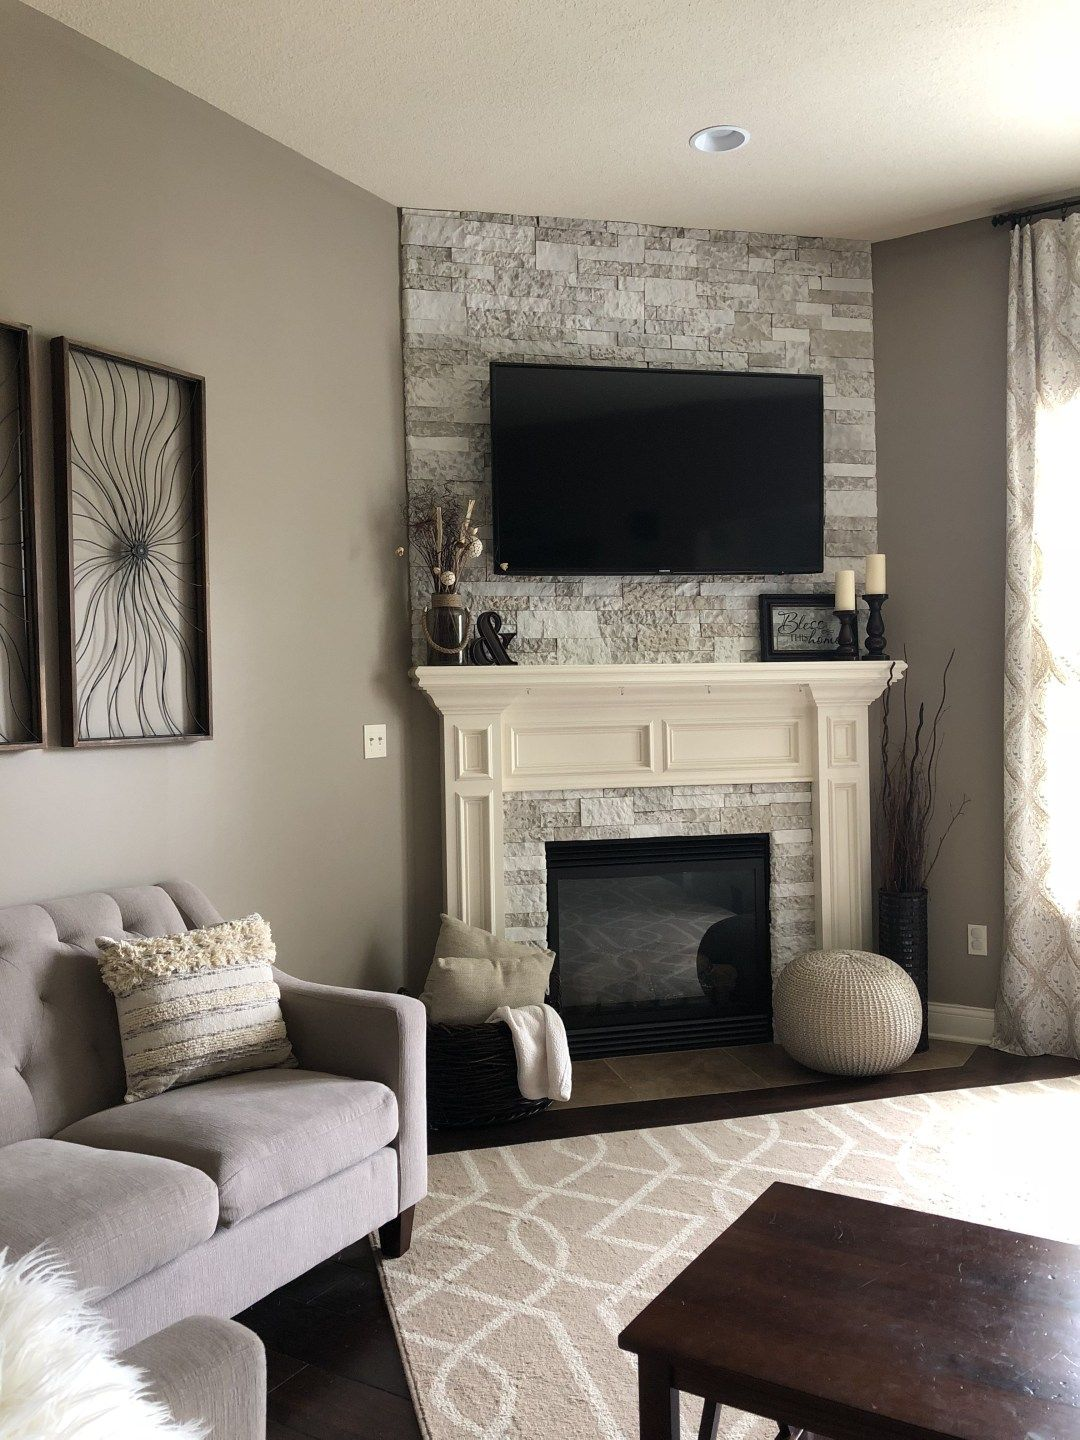 AirStone Fireplace Makeover Airstone fireplace, Diy